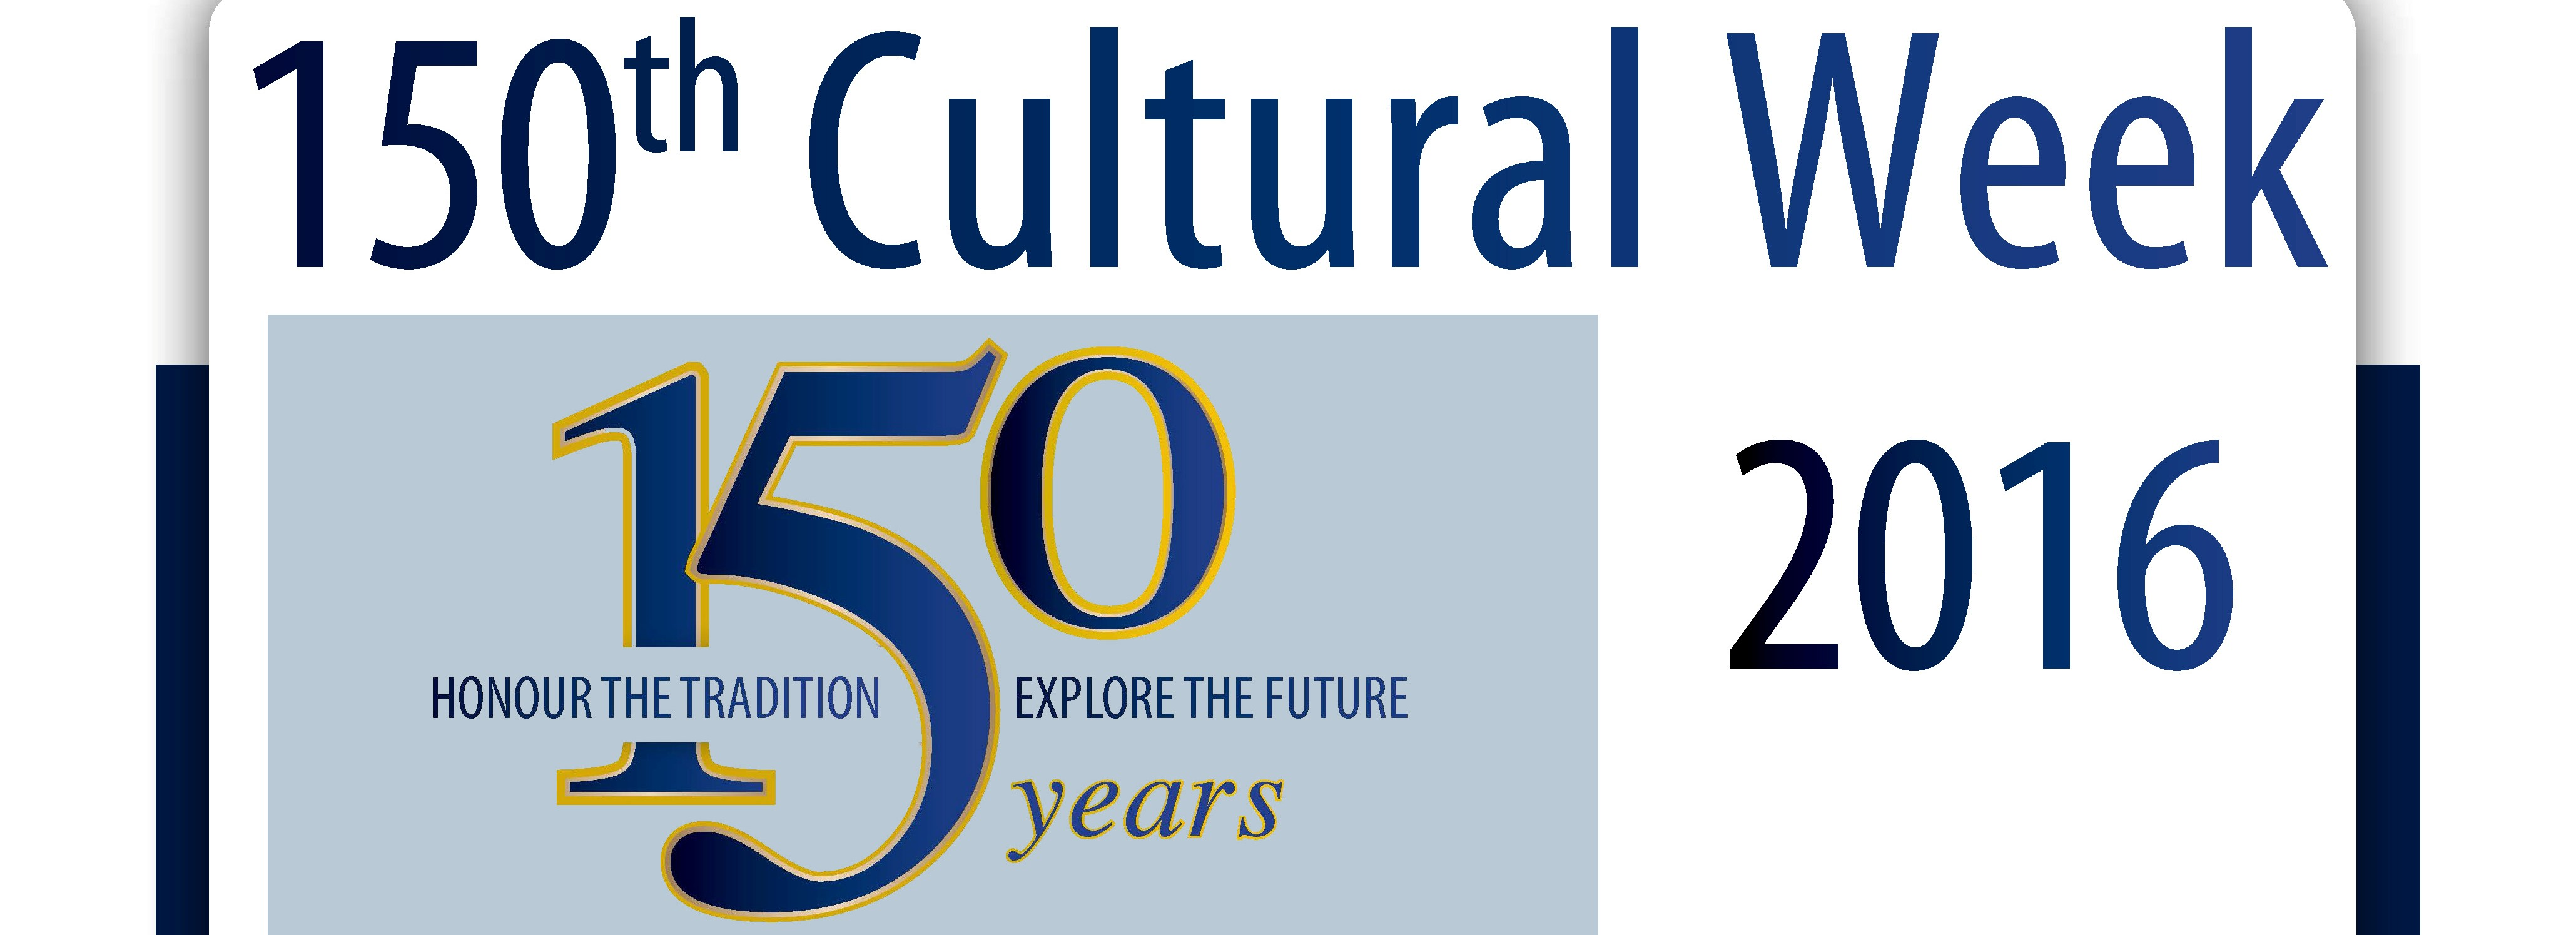 150th Celebrations : Cultural Week : 29 April to 7 May